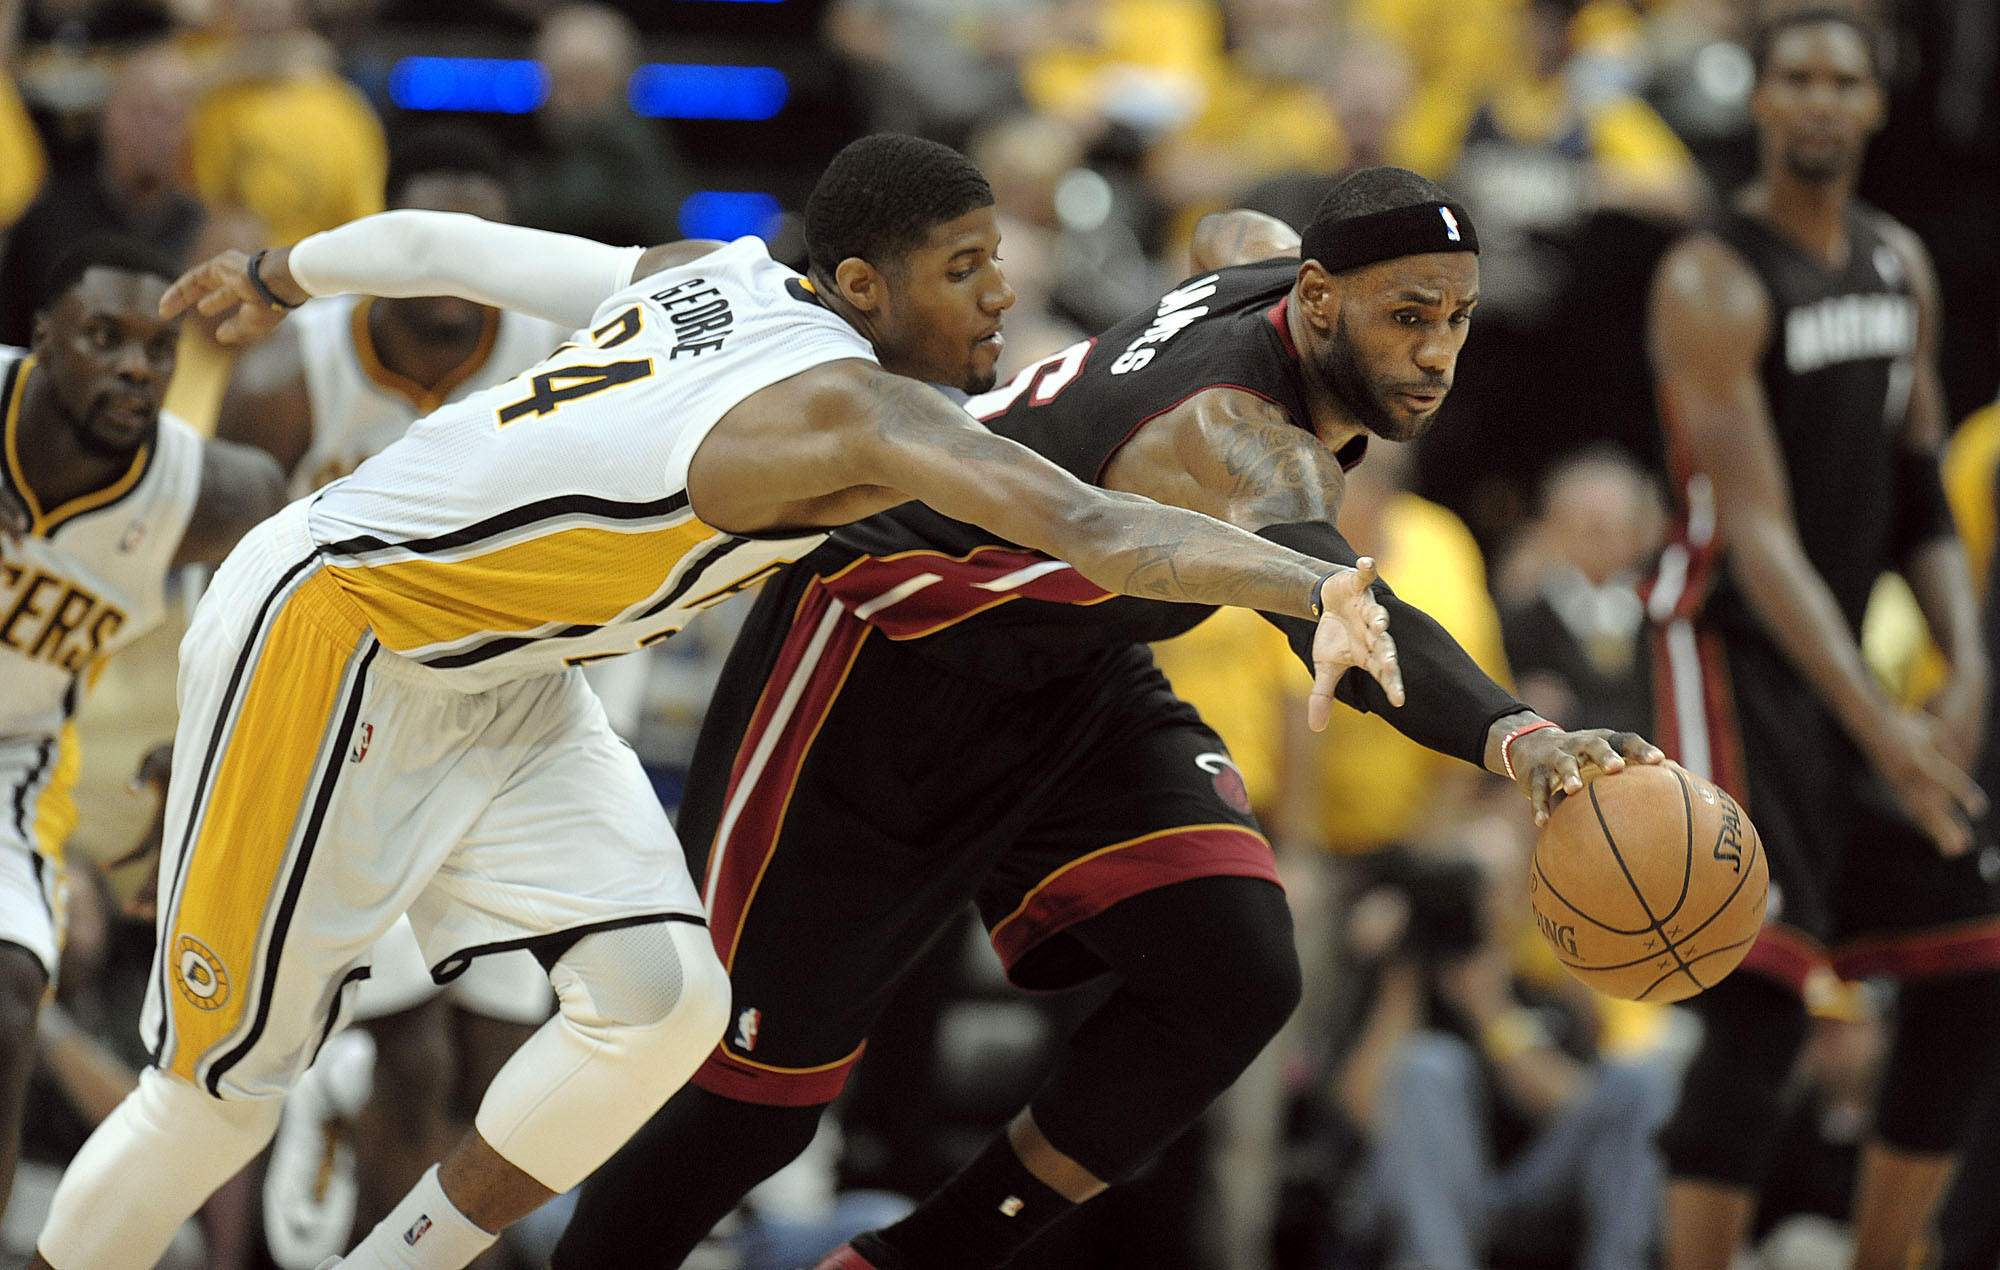 Miami Heat forward LeBron James chases down the ball in front of Indiana Pacers forward Paul George during the second half of Game 5 of the Eastern Conference Finals, Wednesday, May 28, 2014, at Bankers Life Fieldhouse. Michael Laughlin, South Florida Sun Sentinel